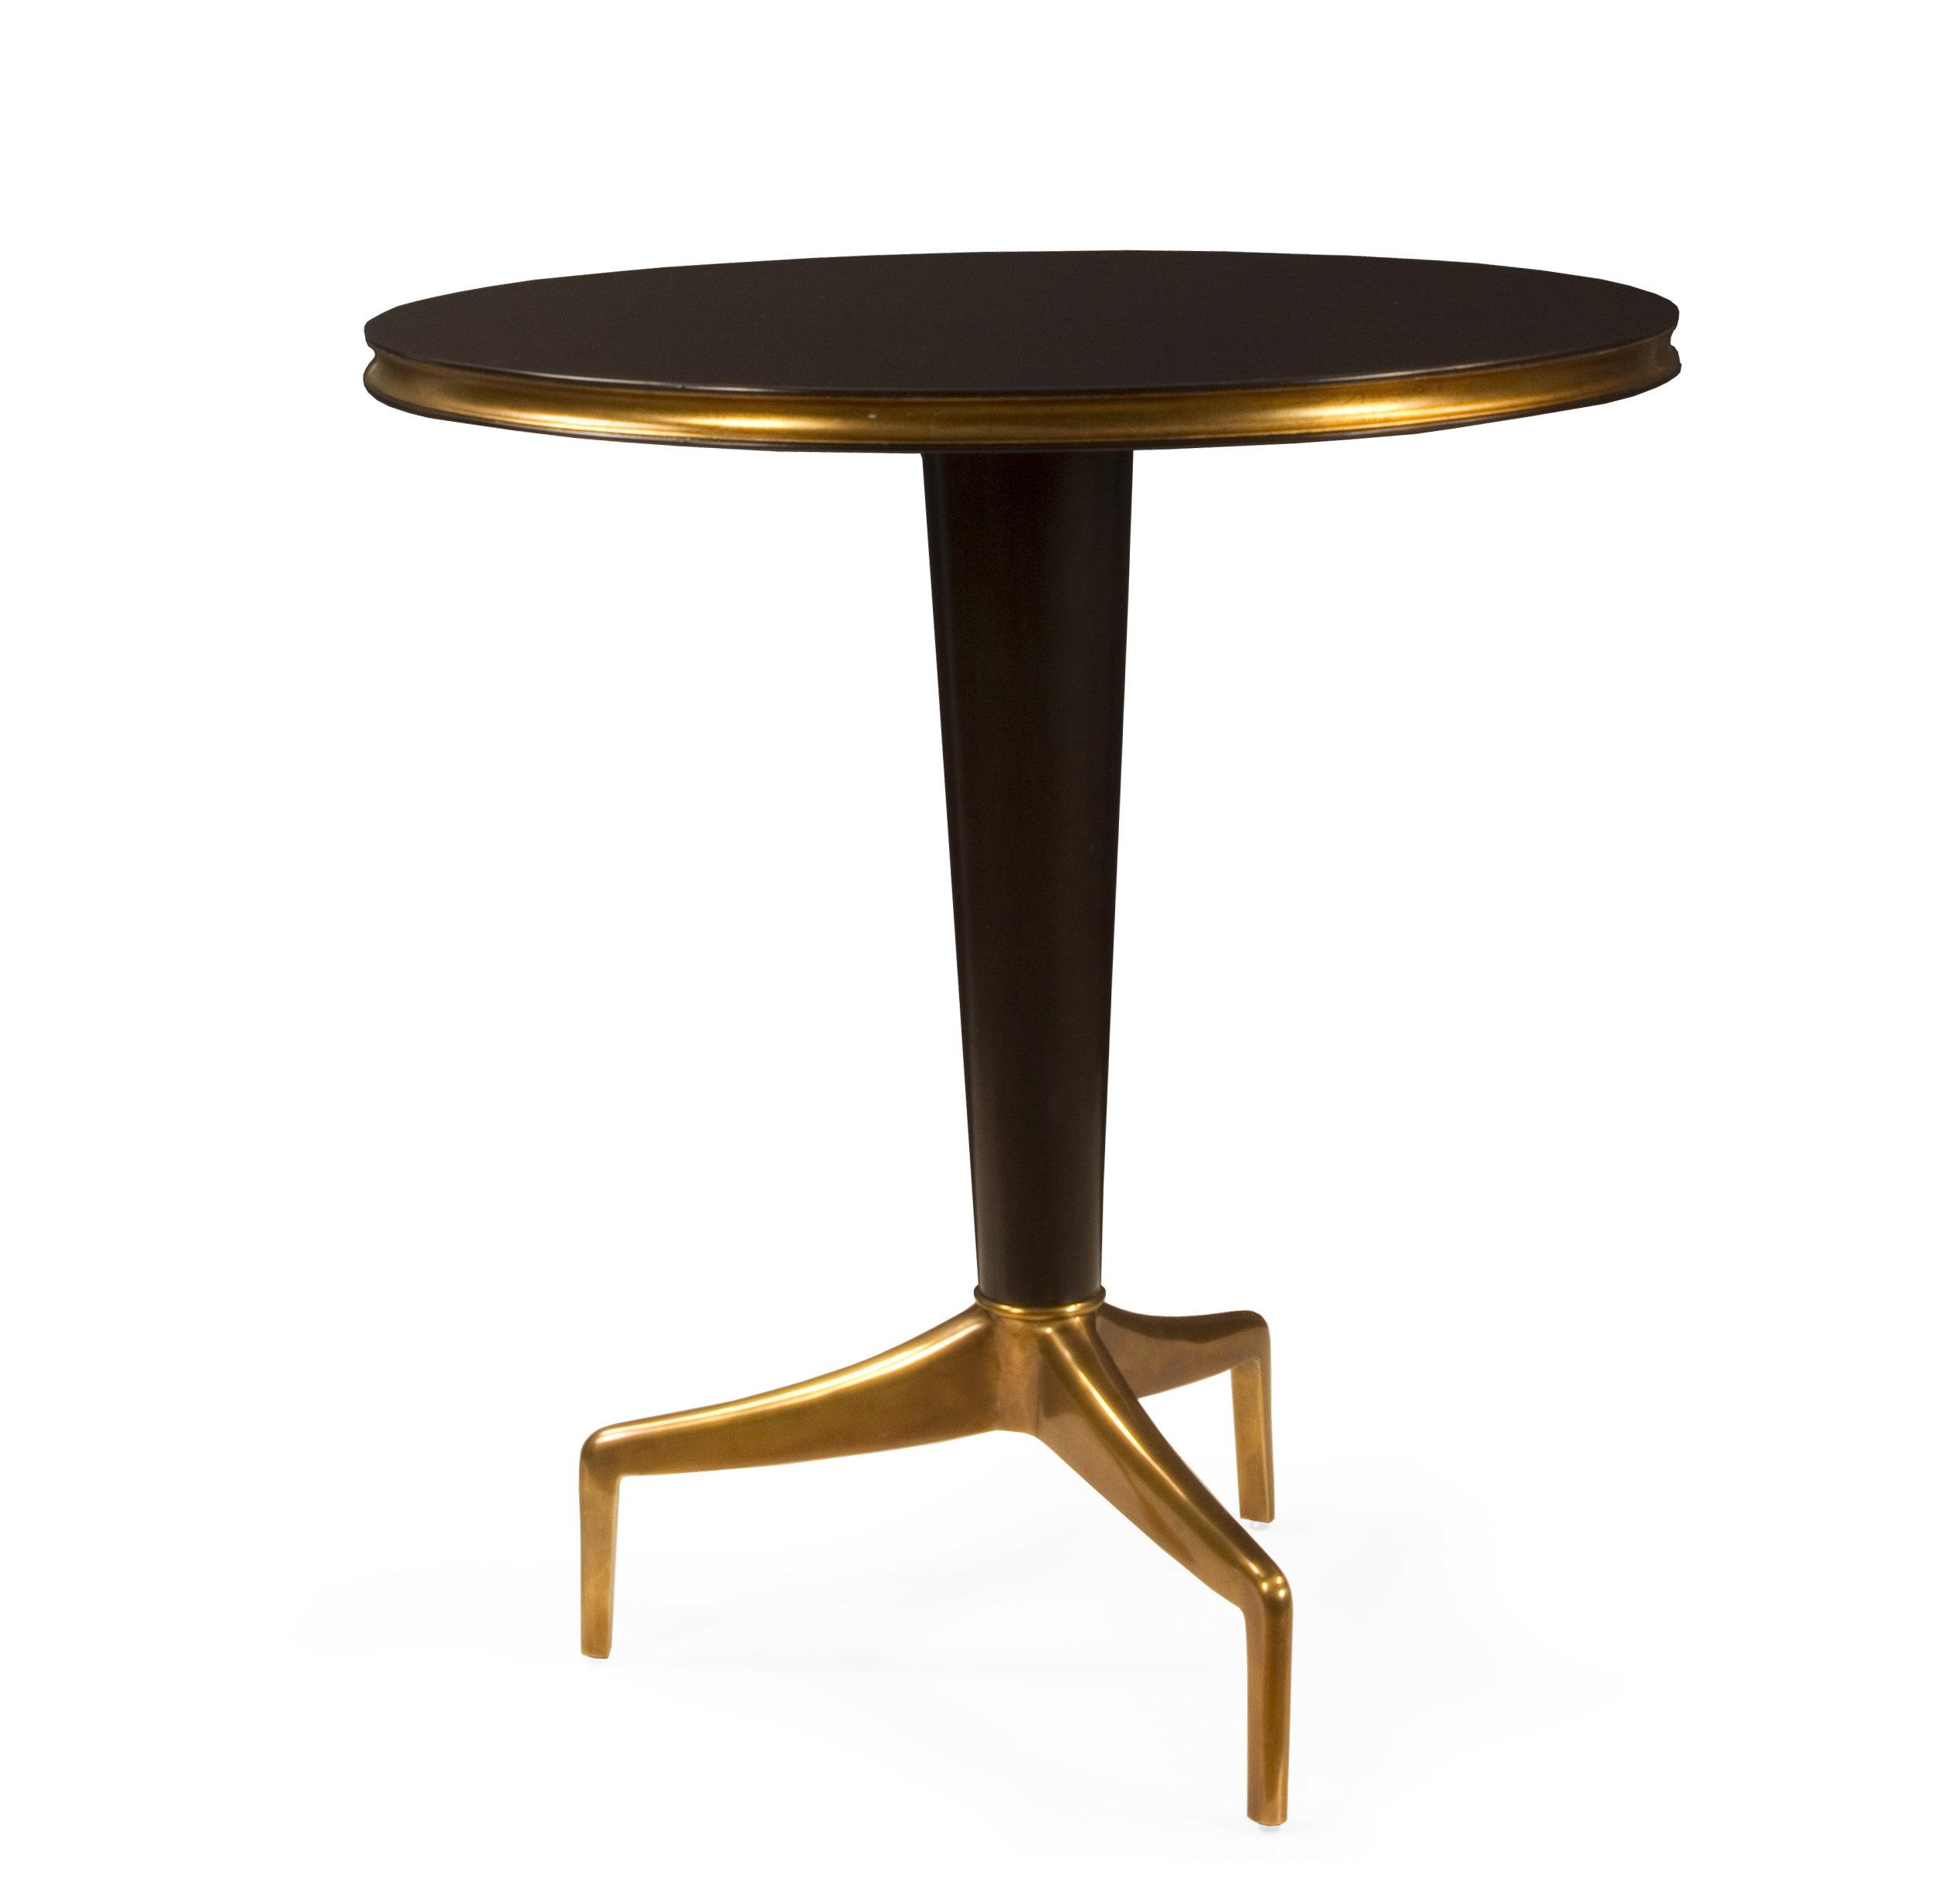 Alden Parkes, Stiletto Wine Table